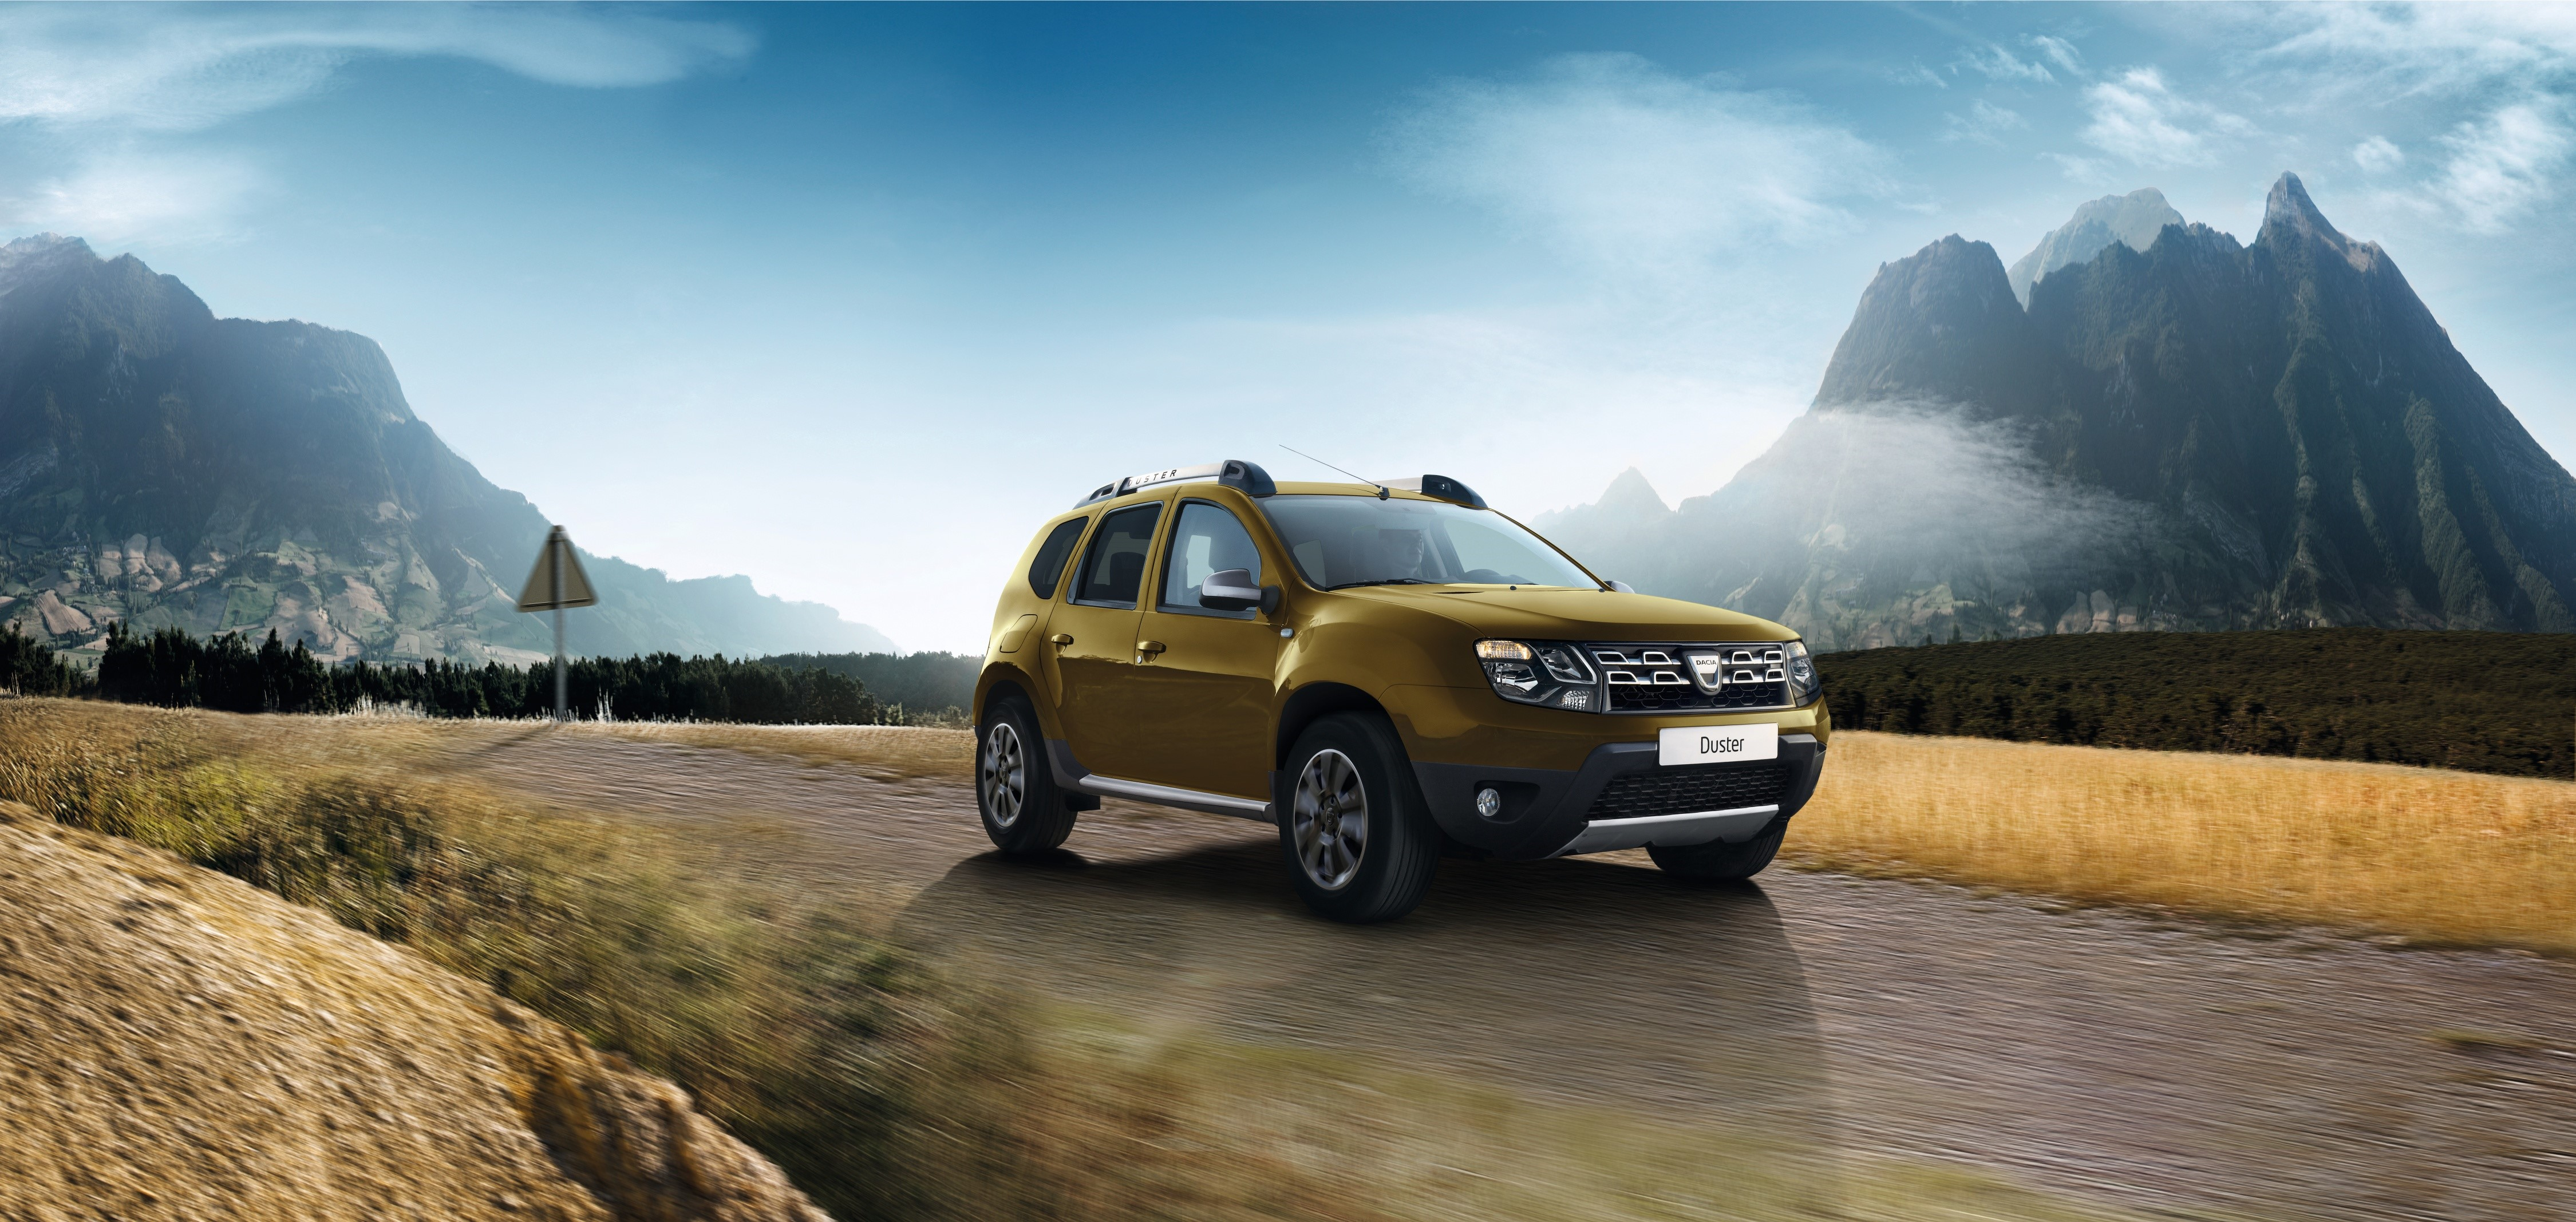 Dacia Duster Model Year 2016